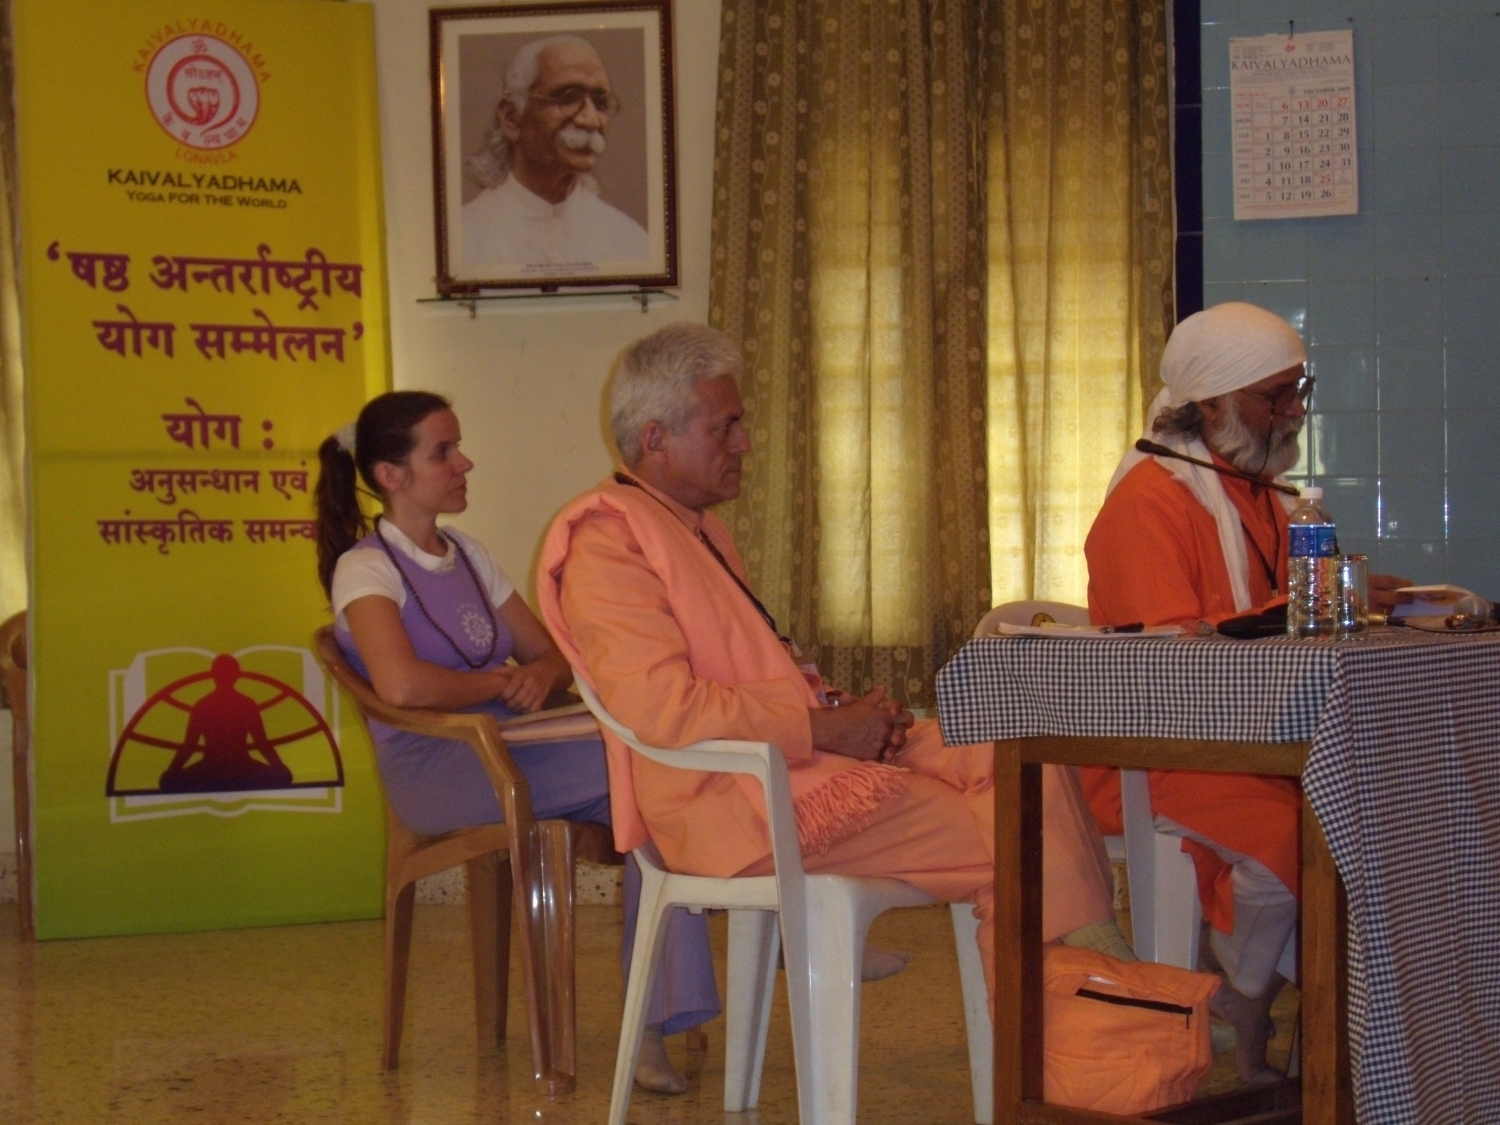 6th International Conference on Yoga, Research and Cultural Synthesis - Keivalyadhama Yoga Institute, Lonavala, India - 2009, December